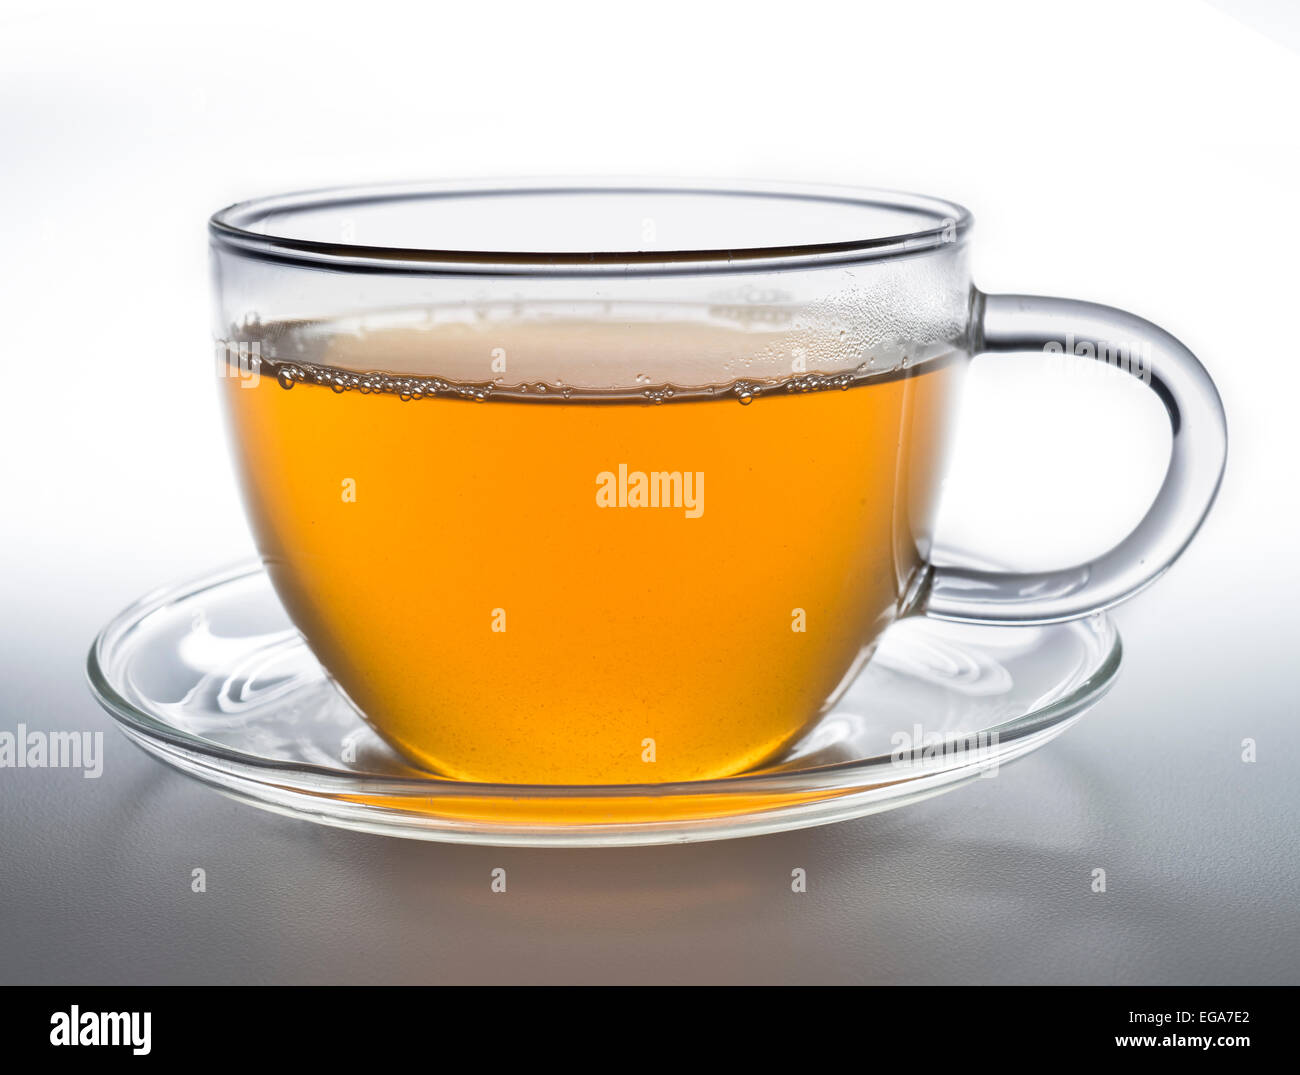 green tea cup - Stock Image